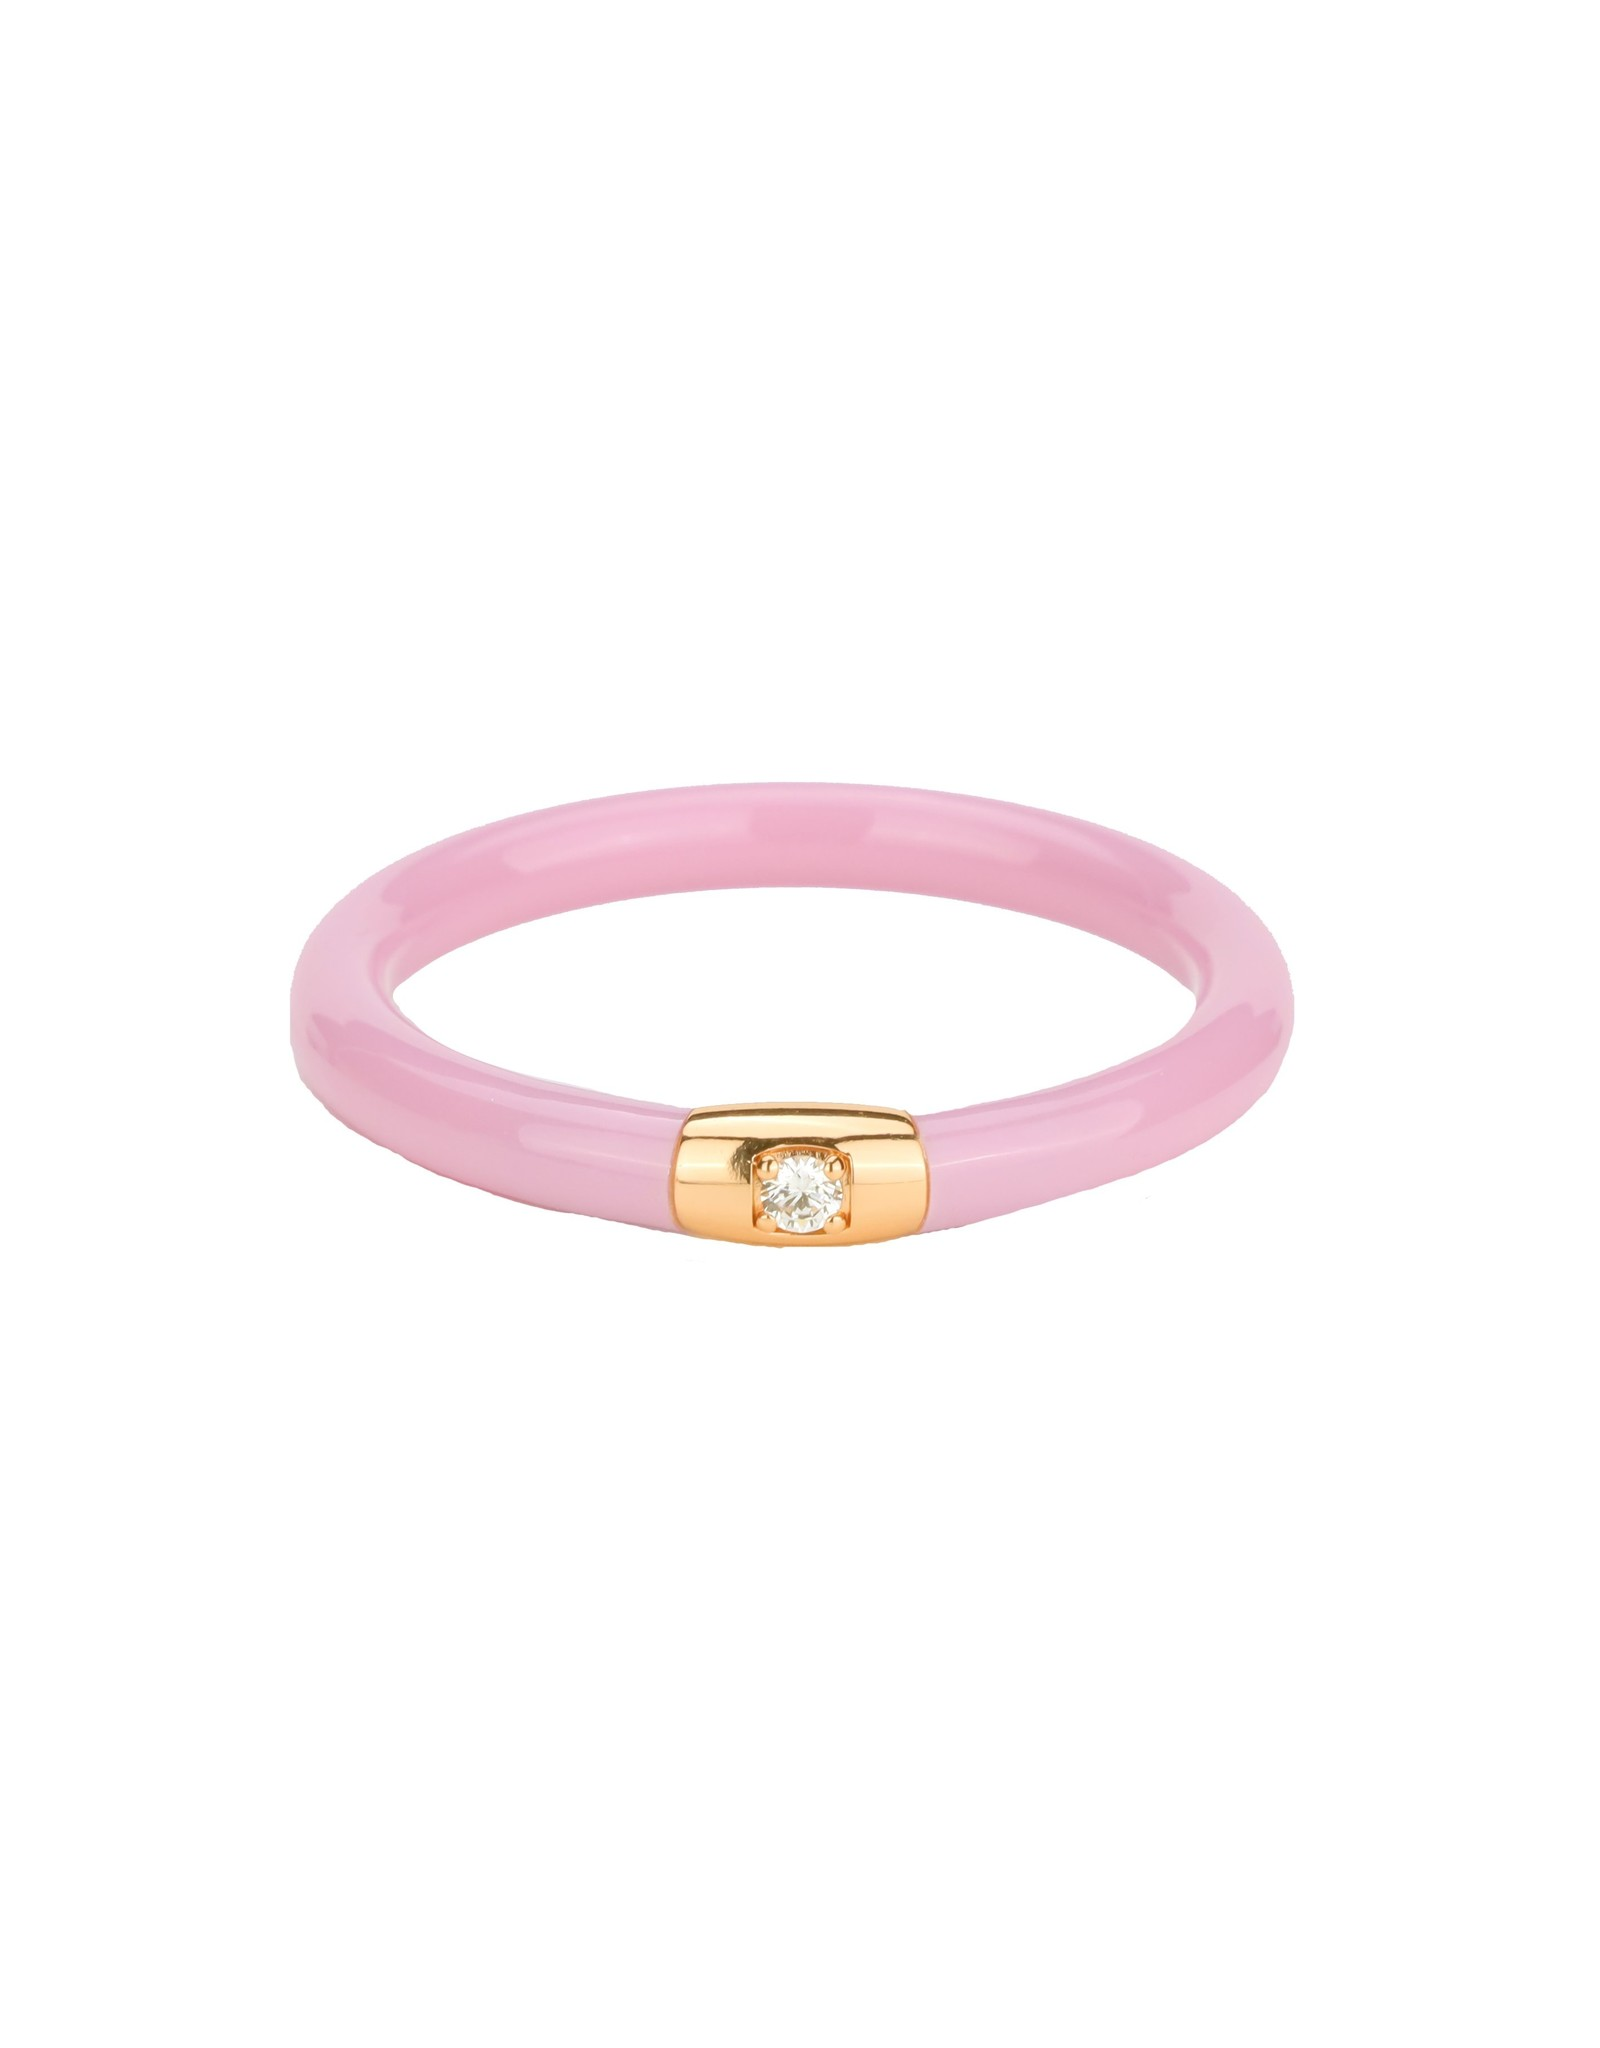 BuDhaGirl kids pink bangle